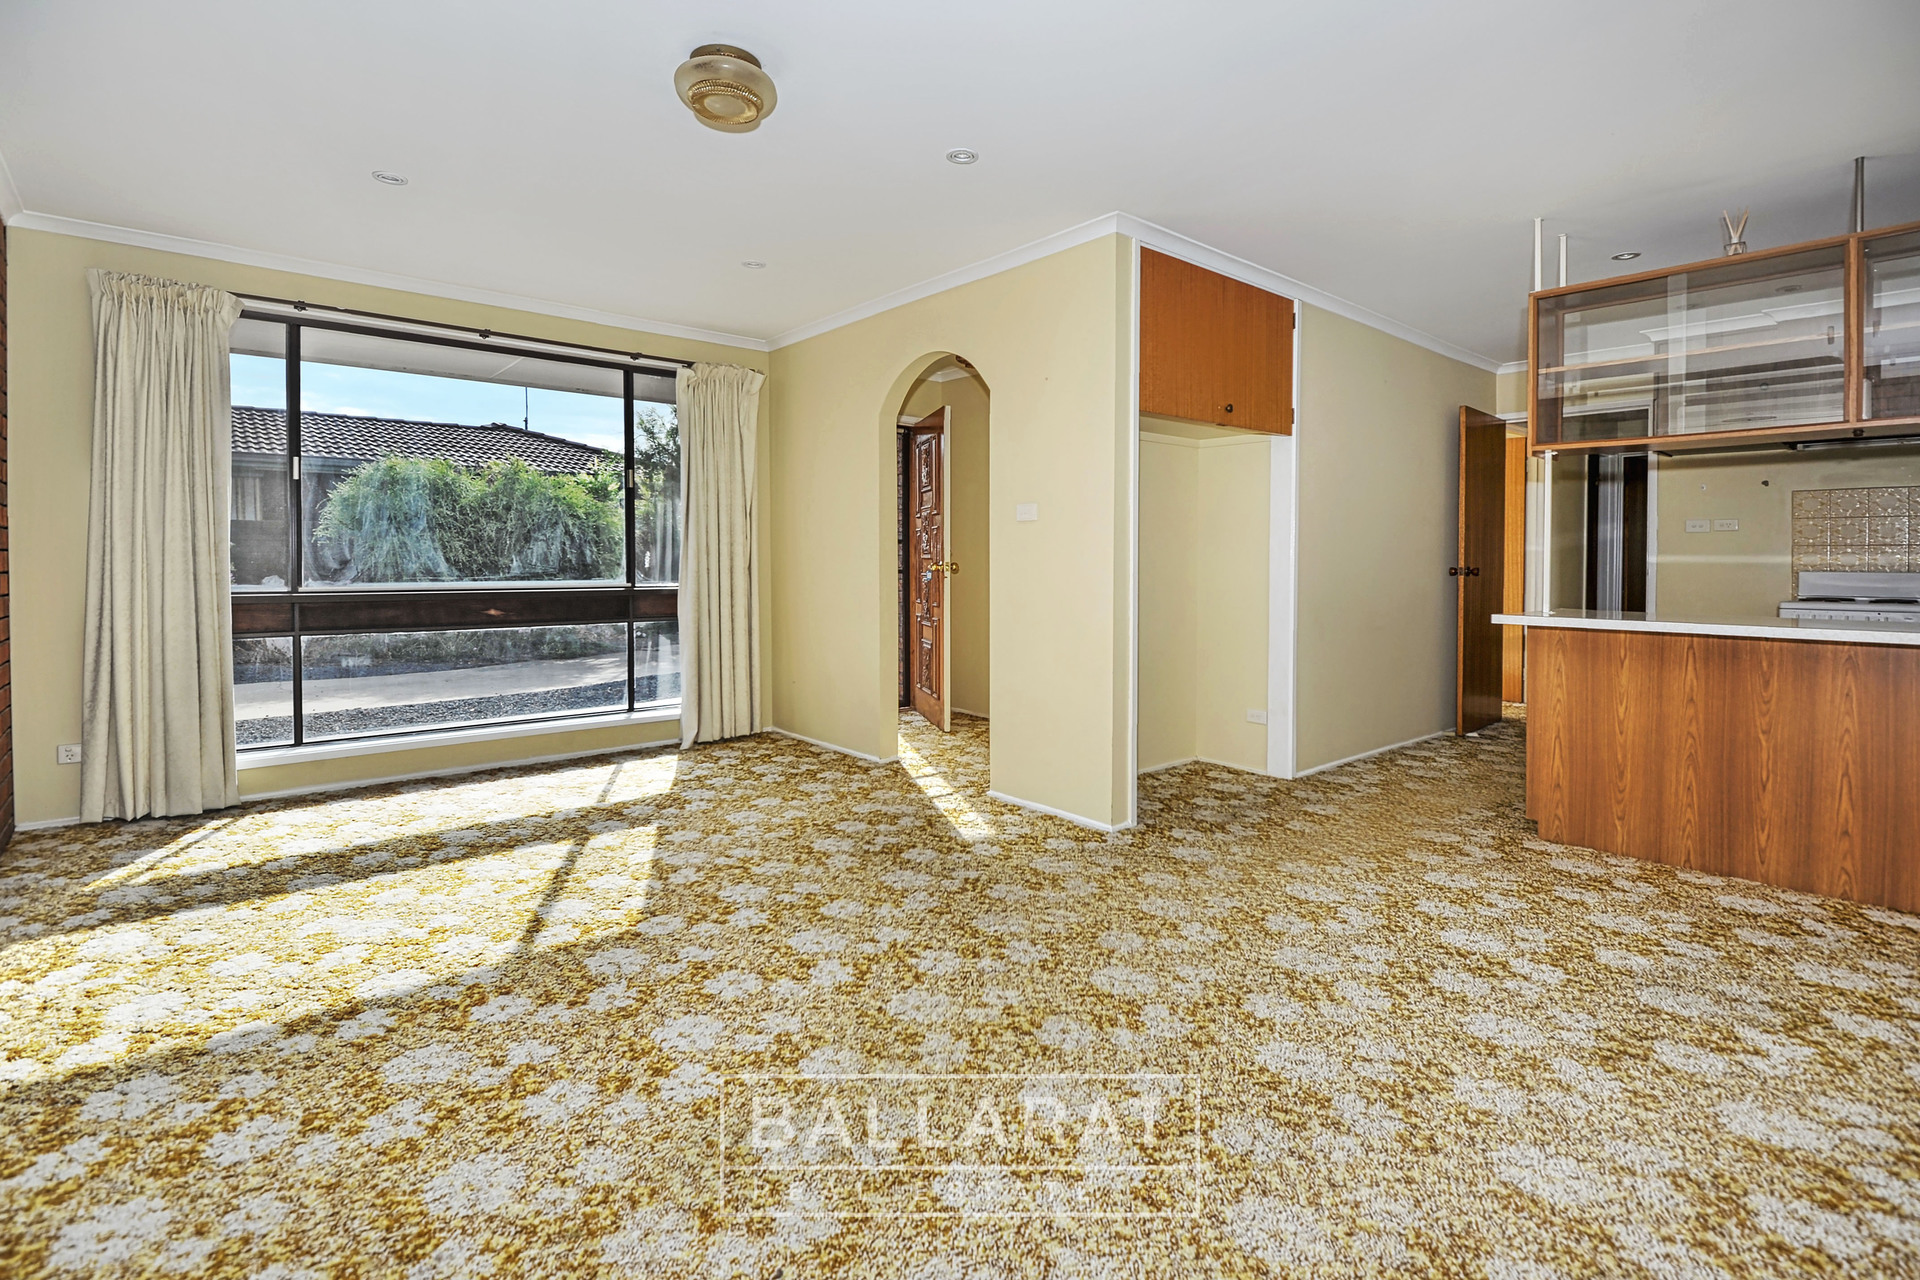 2/6 Rinford Street Maryborough